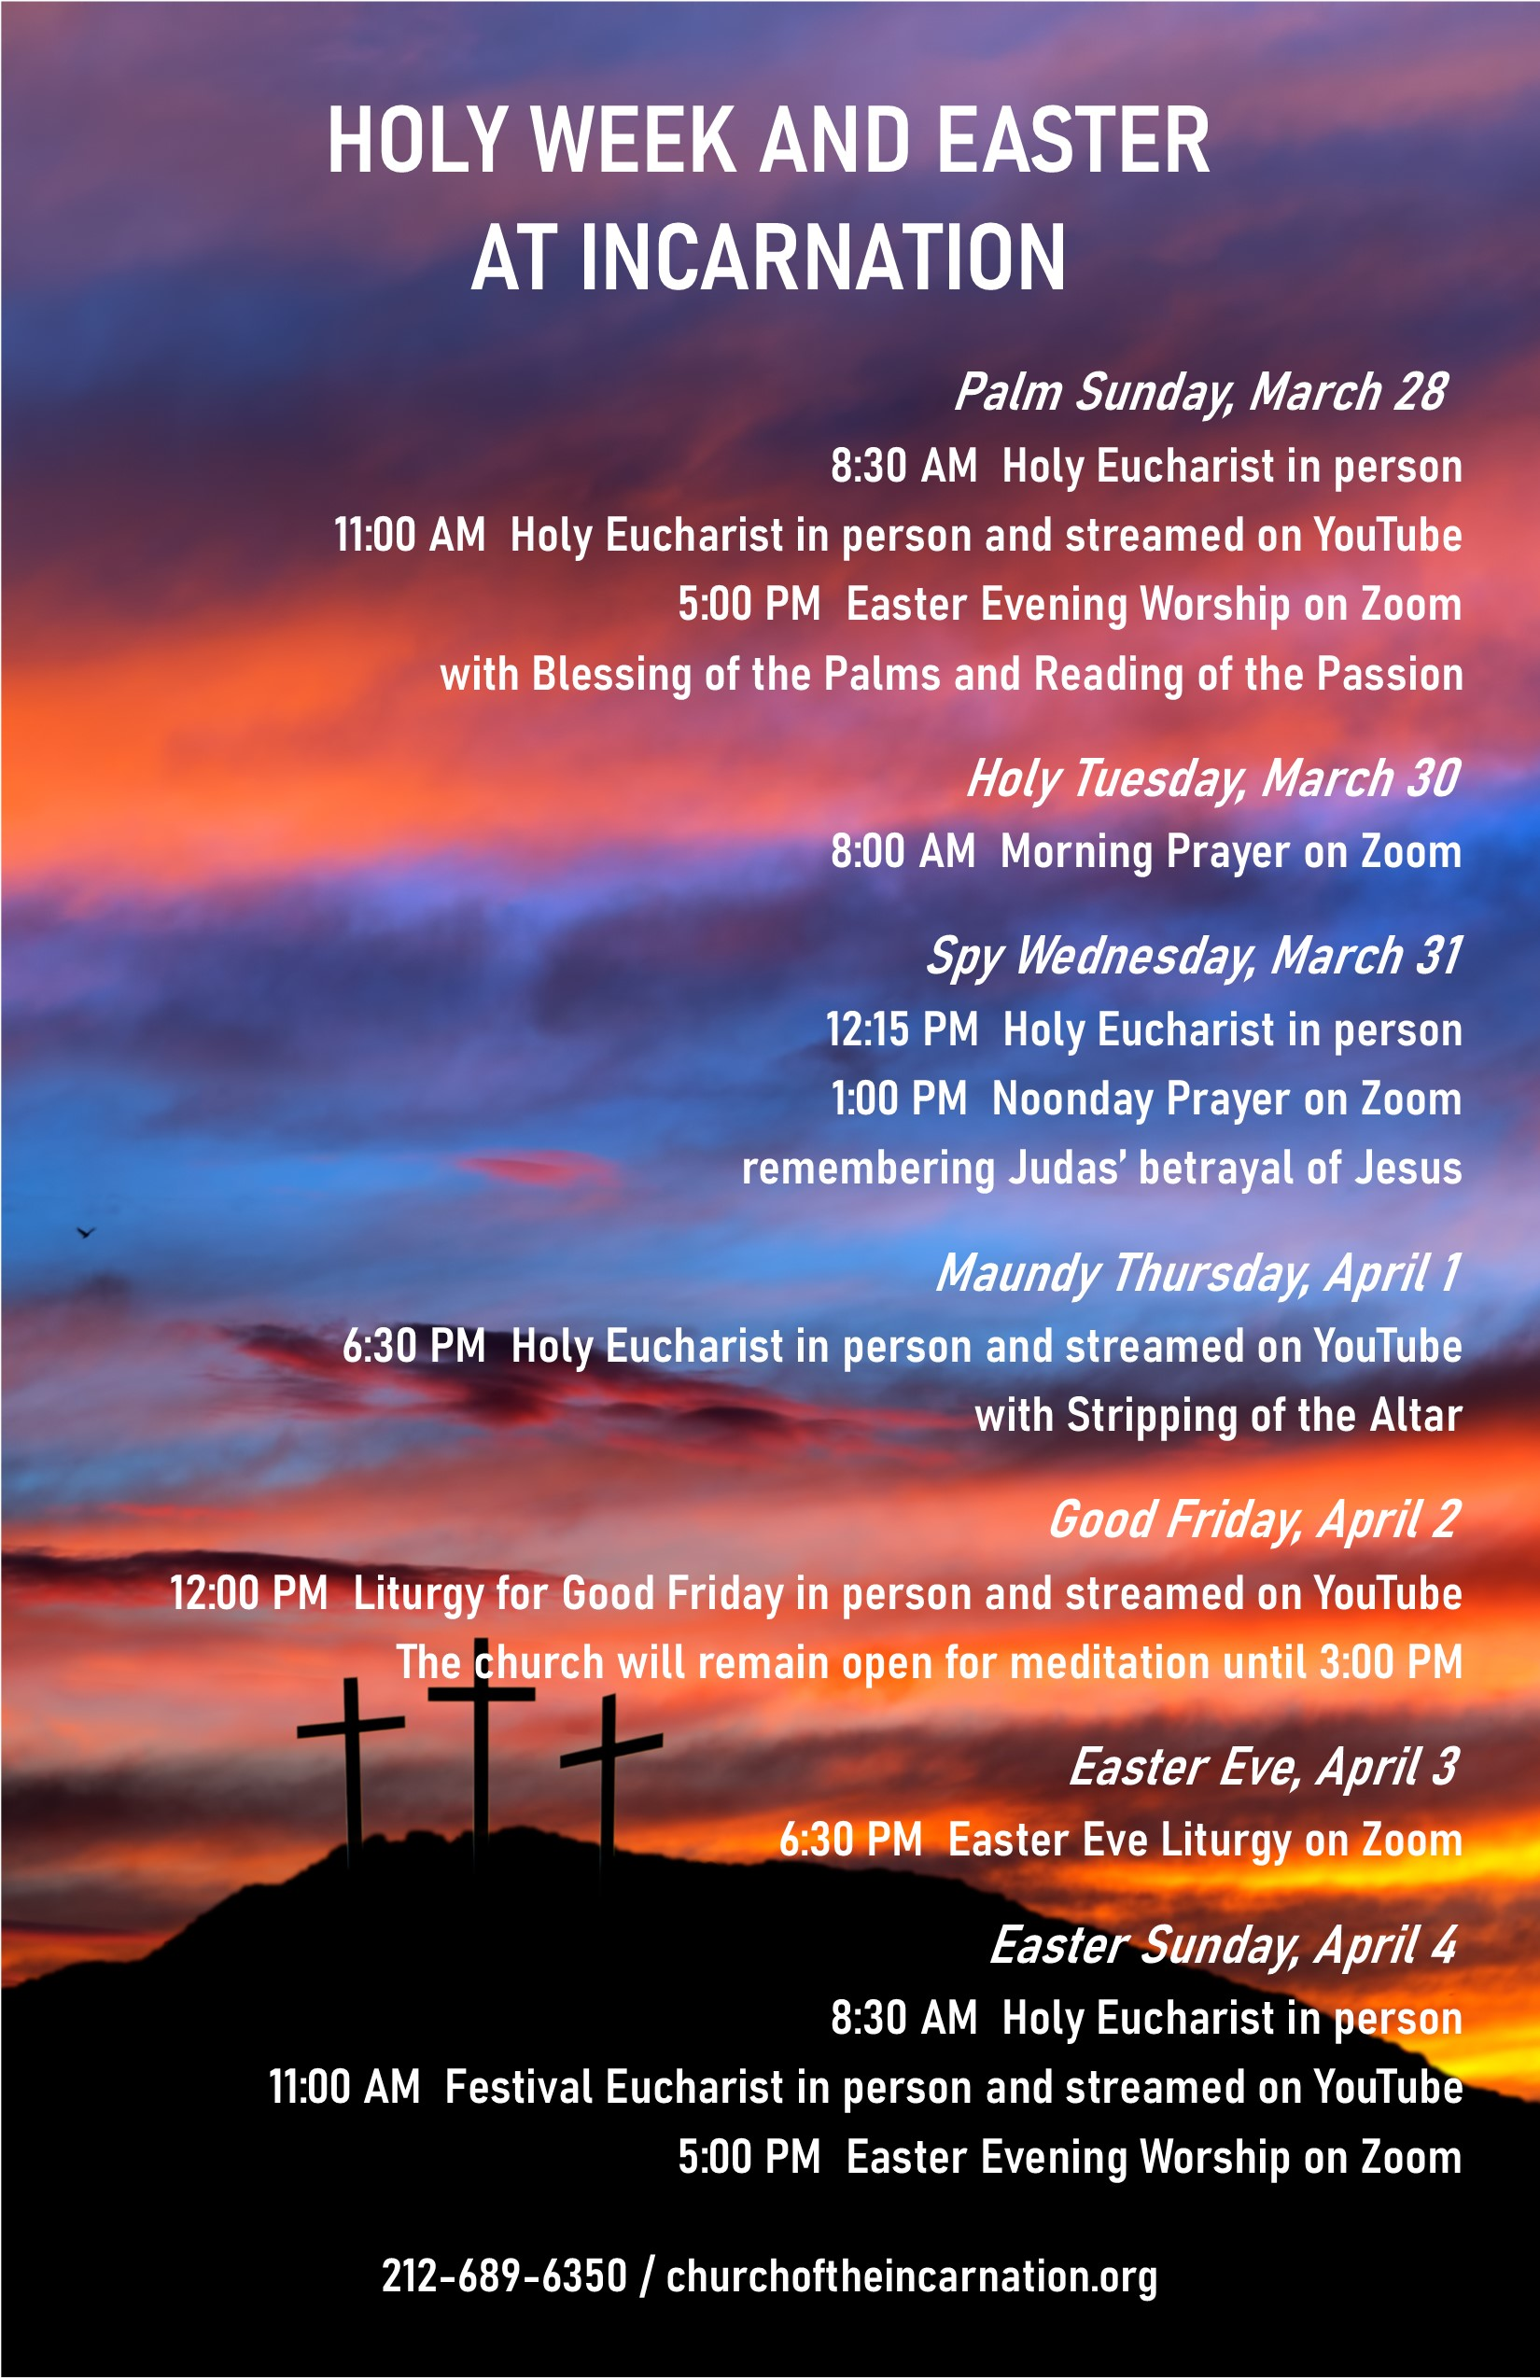 Holy Week and Easter at Incarnation flyer